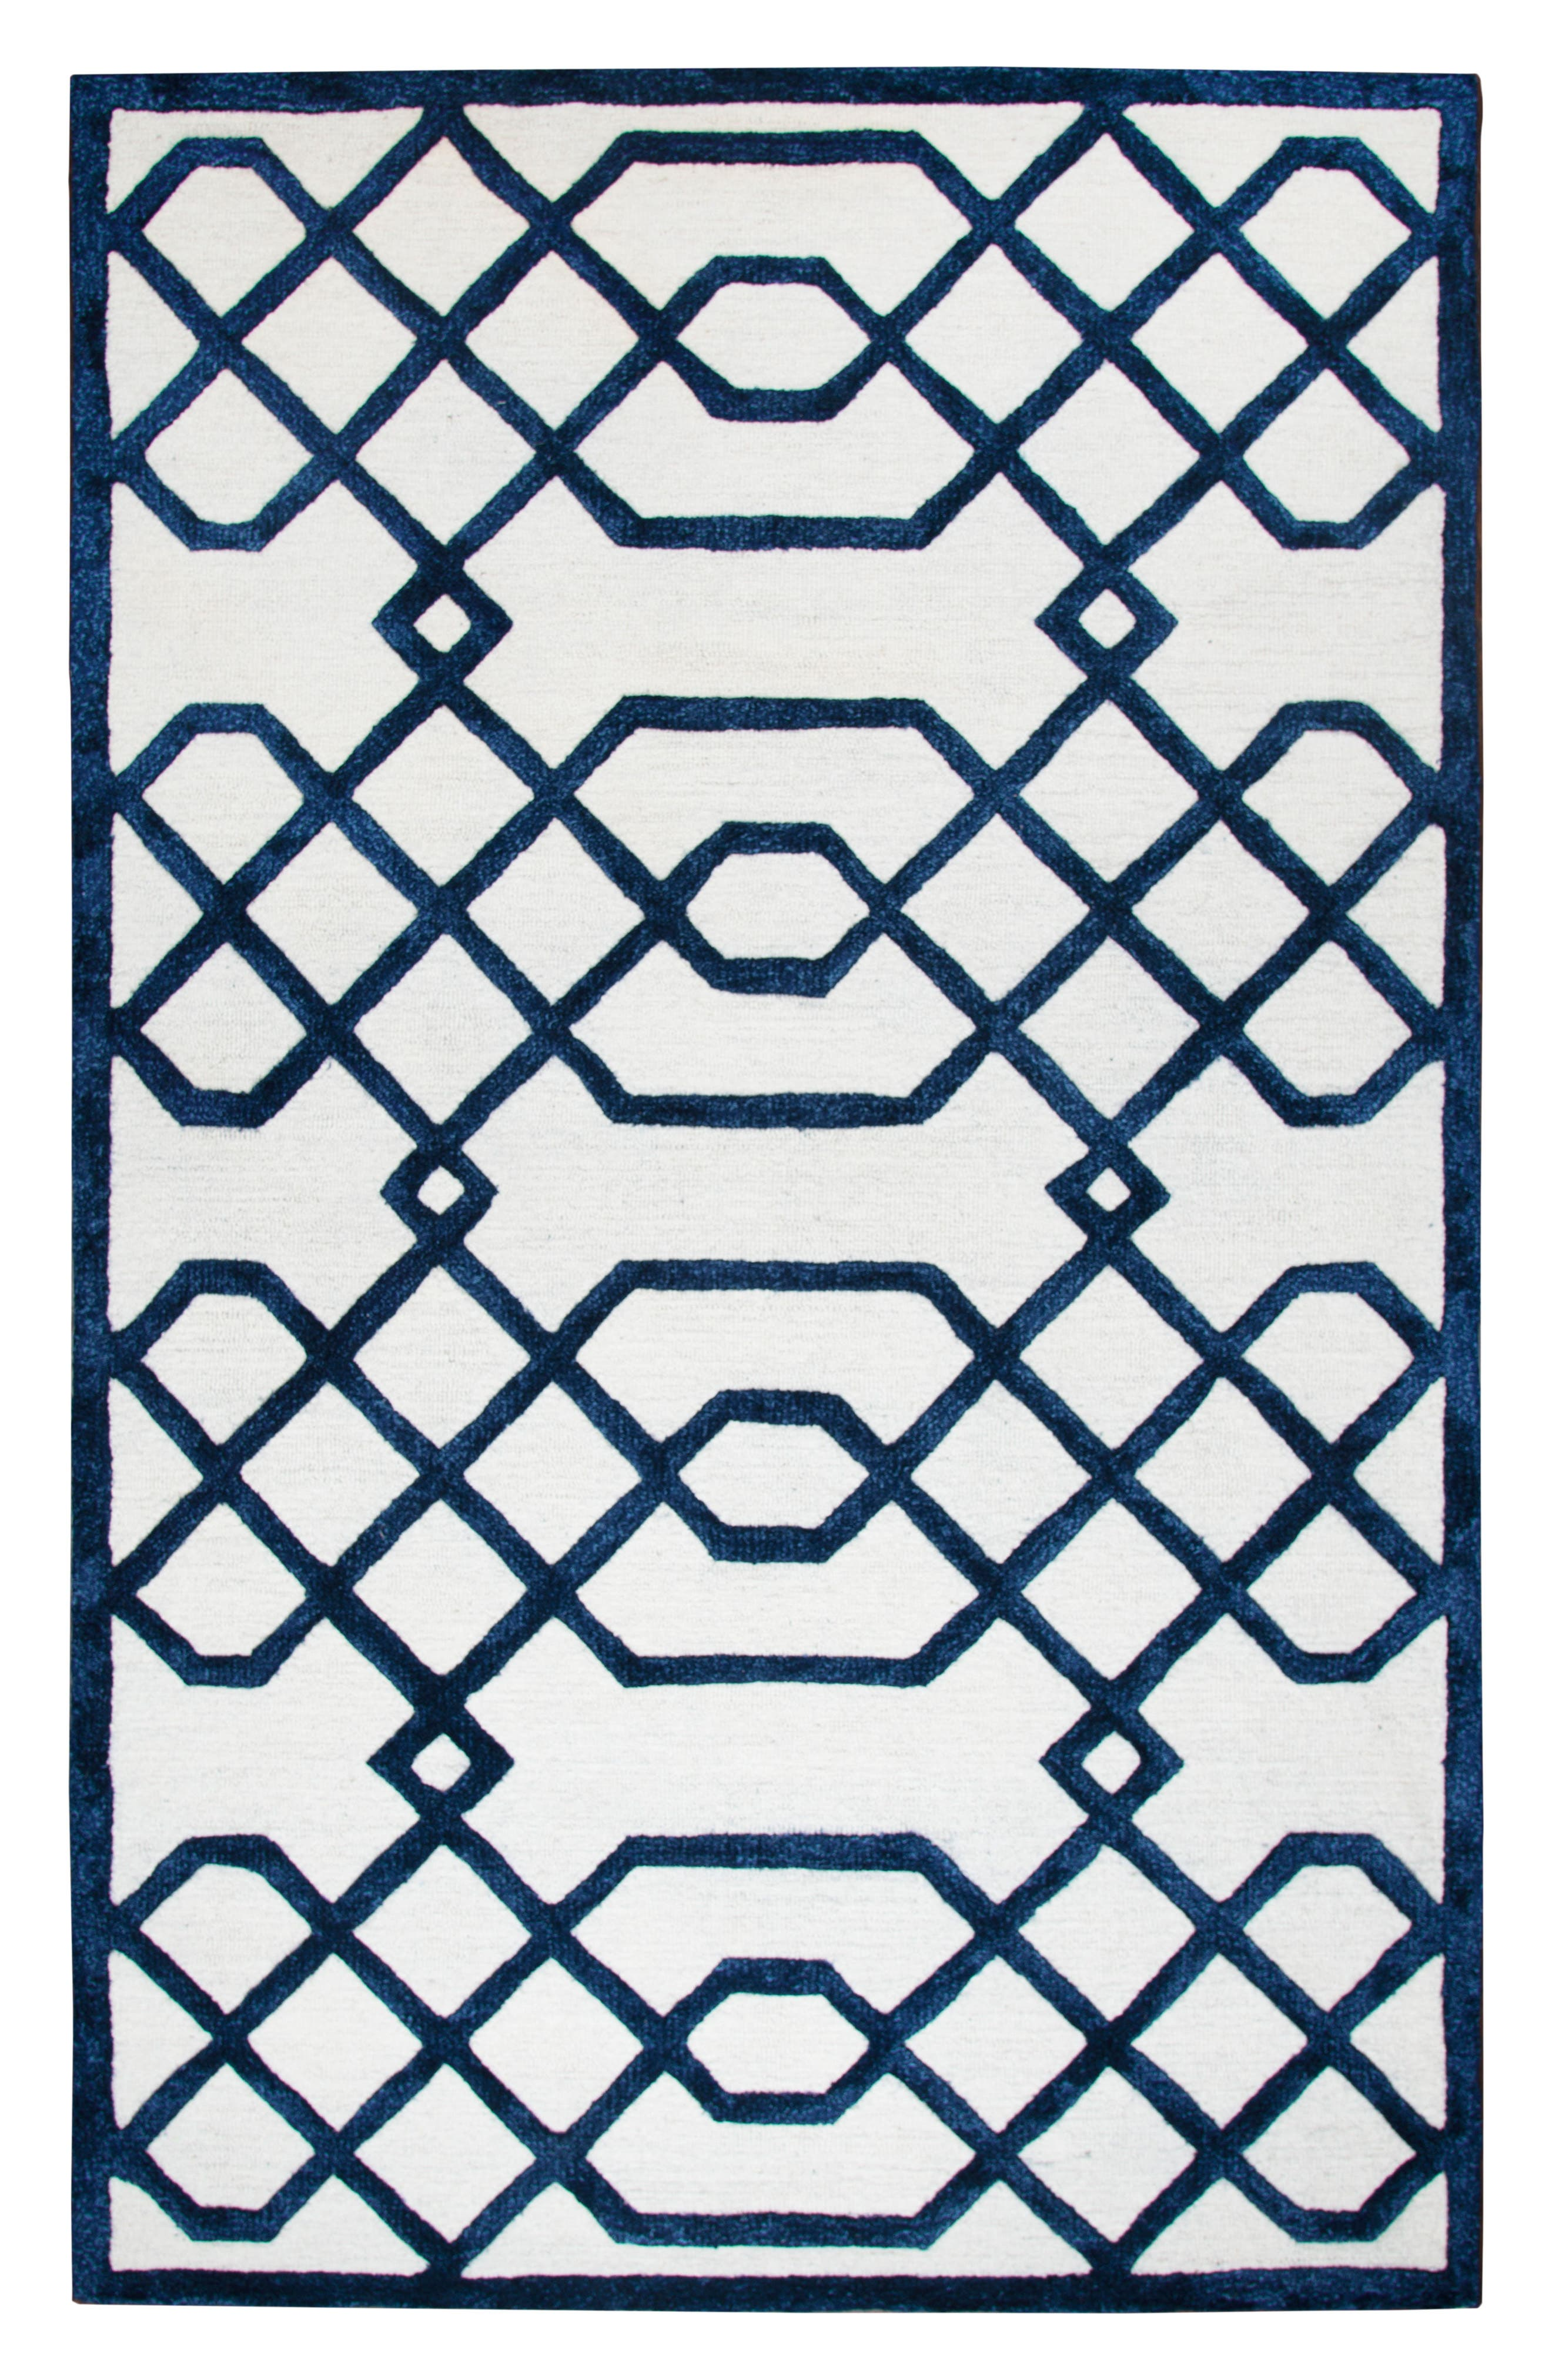 Alternate Image 1 Selected - Rizzy Home Lattice Scroll Hand Tufted Wool Area Rug